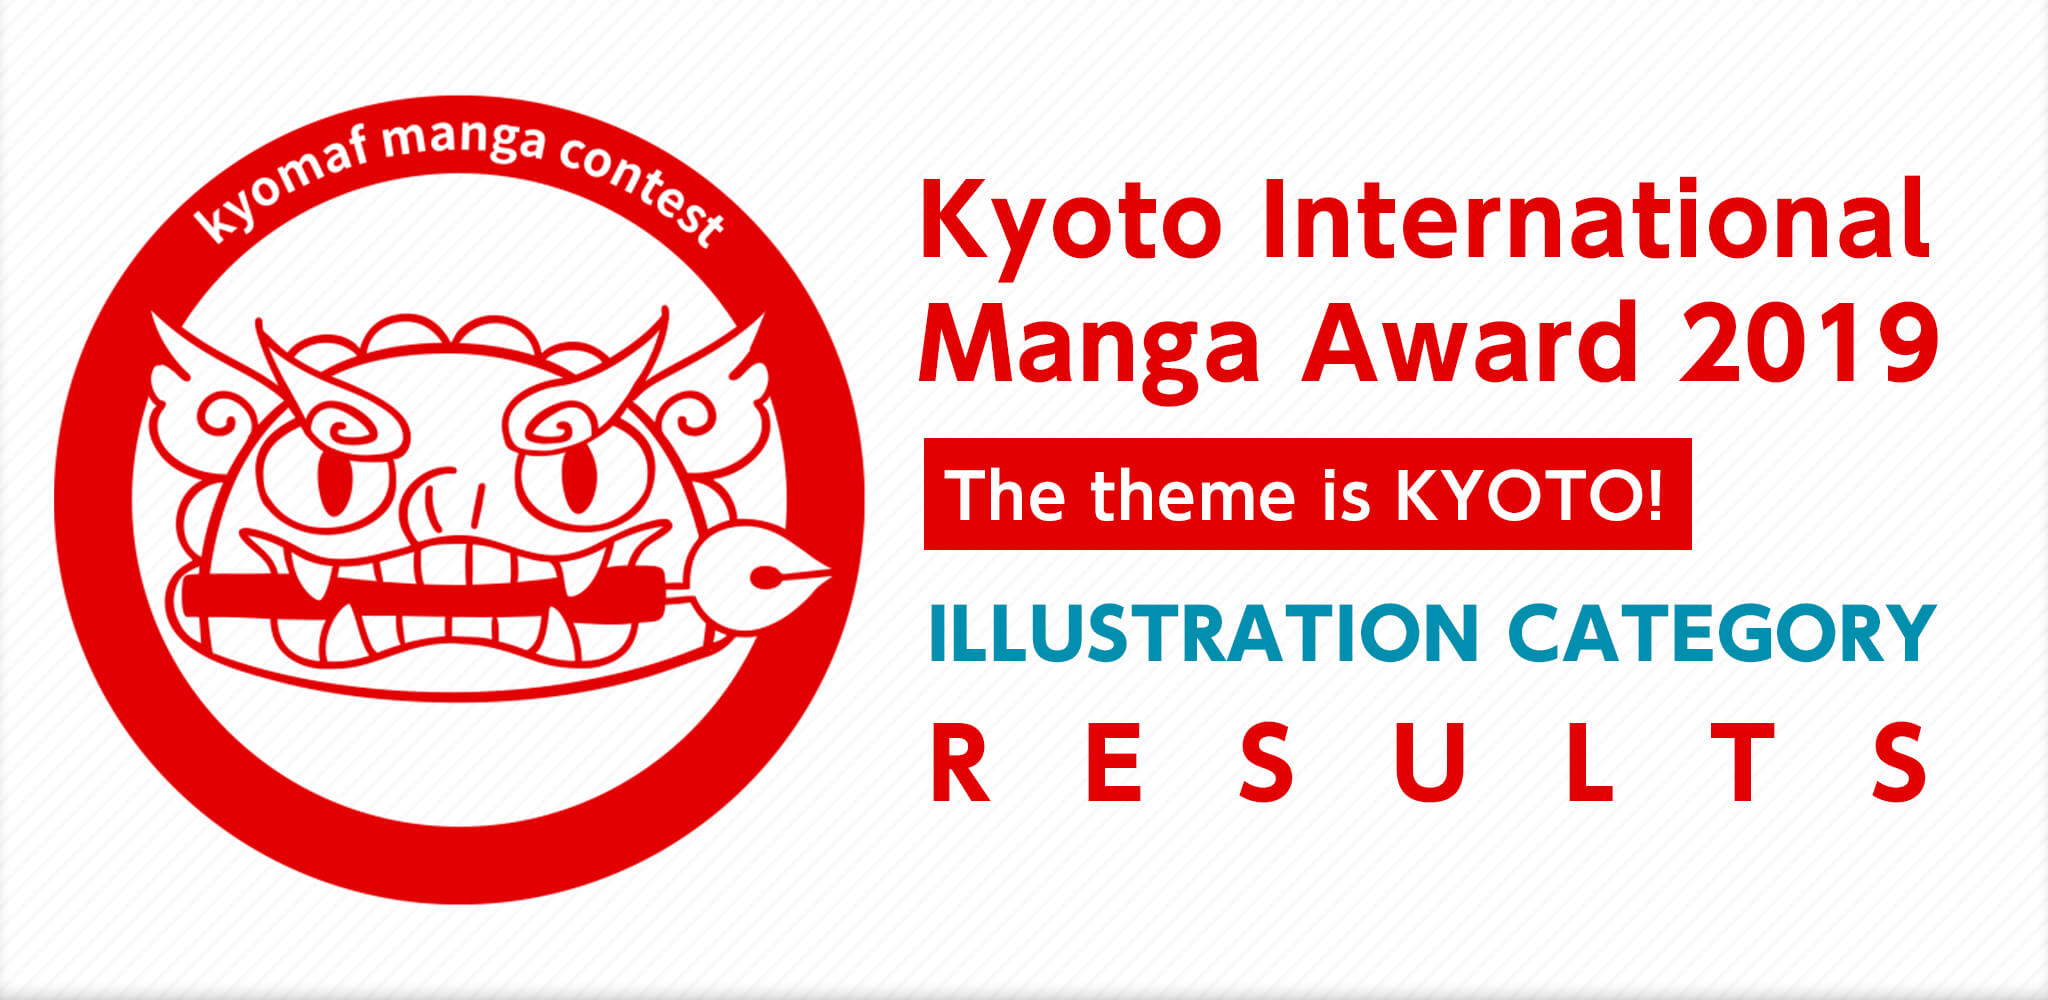 Kyoto International Manga Awards 2019 Illustration Category Results | Contest - ART street by MediBang